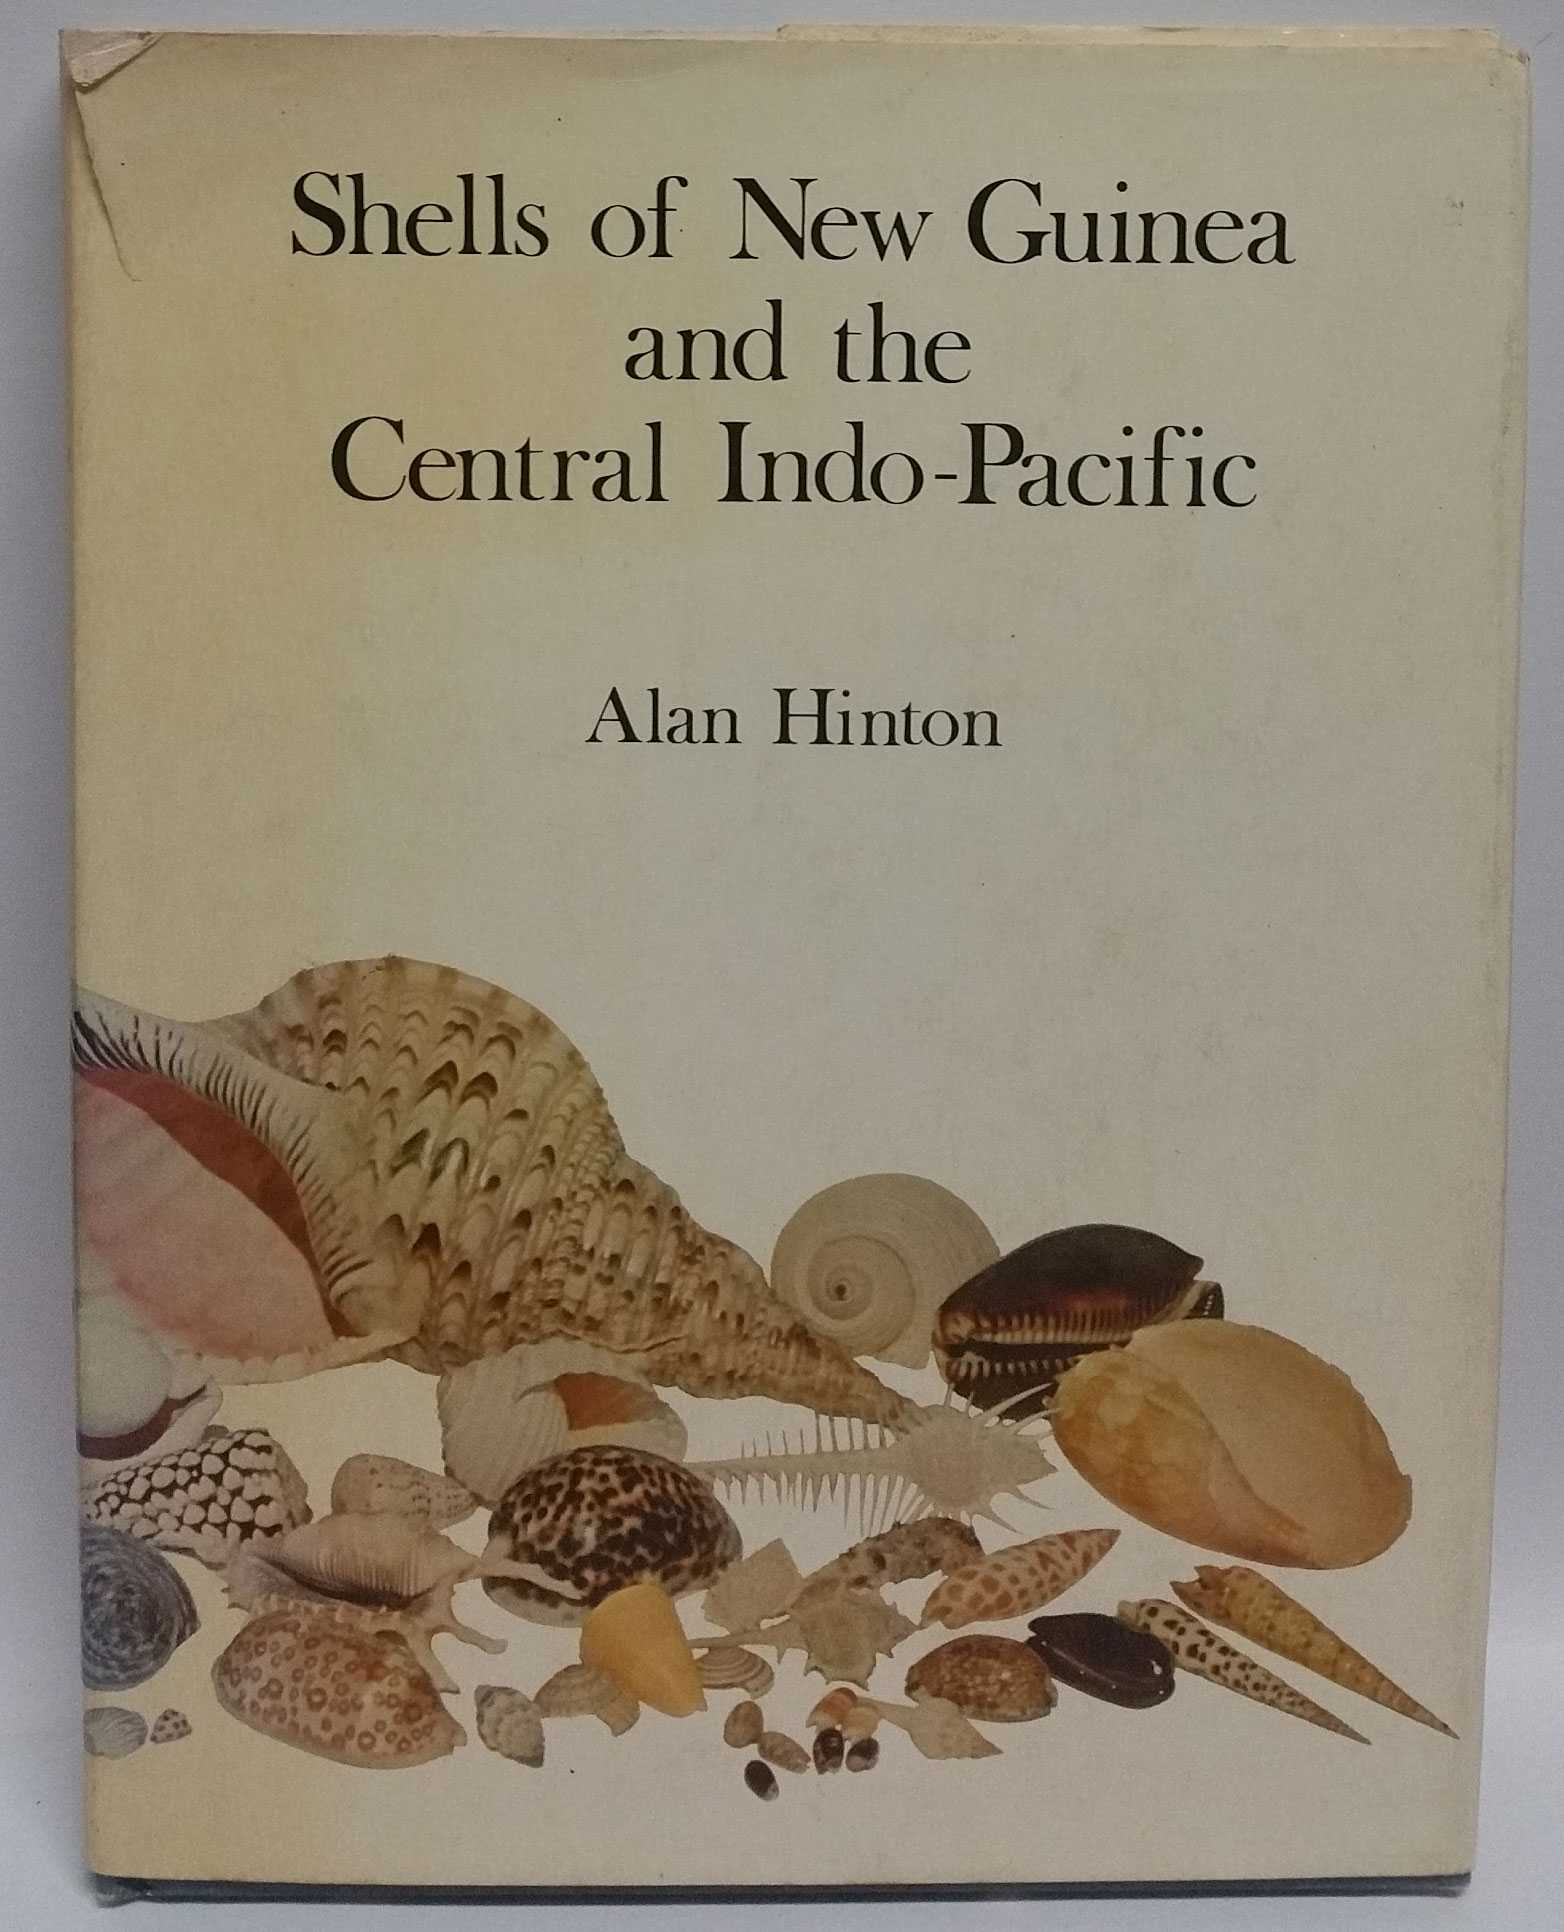 Shells of New Guinea and the Central Indo-Pacific, Alan Hinton